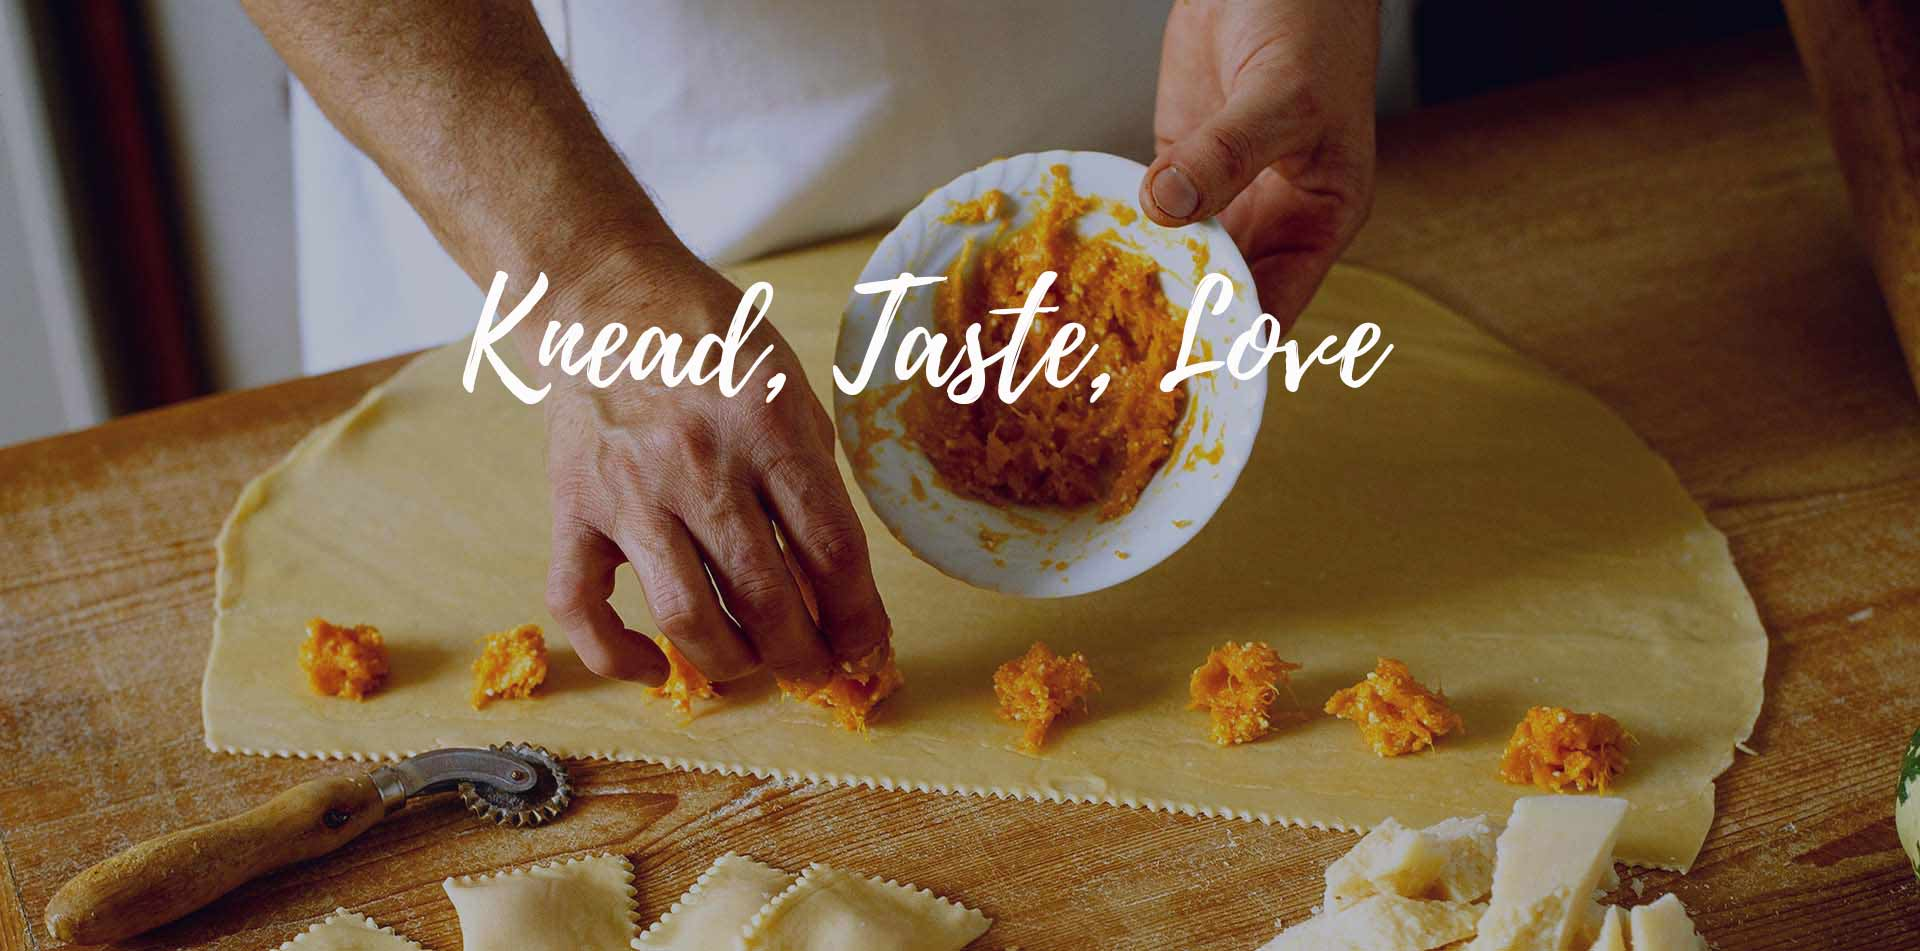 Europe Italy Amalfi Coast chef making butternut squash agnolotti pasta knead taste love - luxury vacation destinations